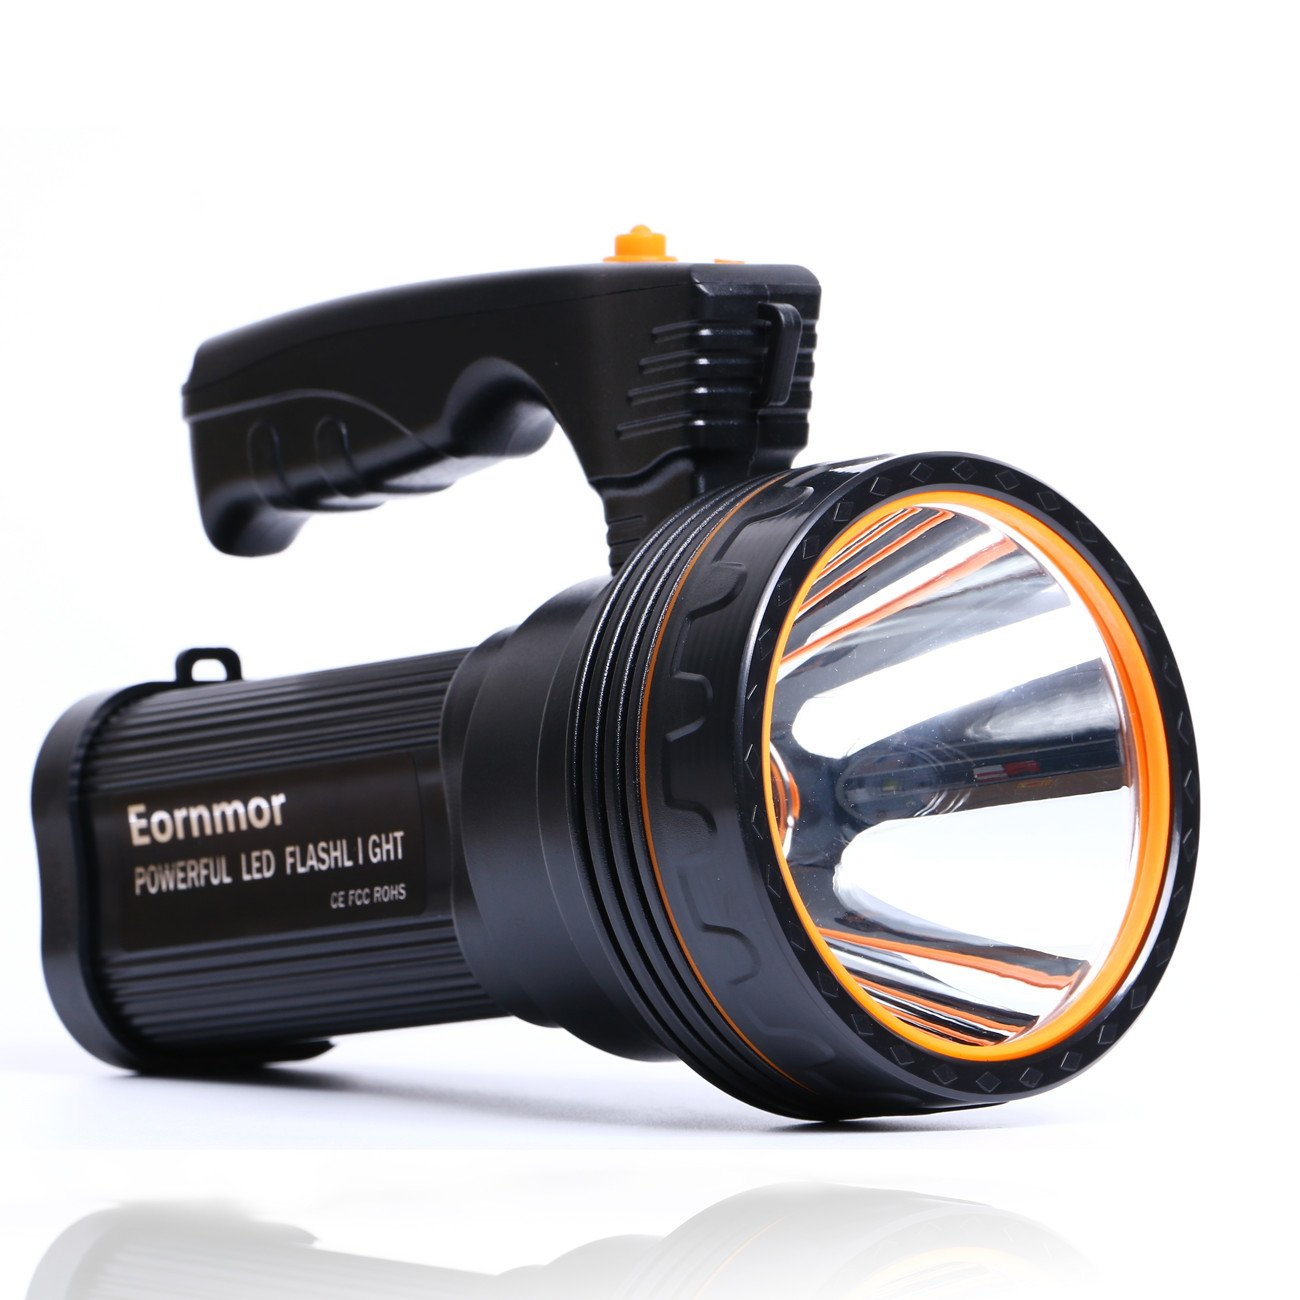 Eornmor Outdoor Handheld Portable Flashlight 6000 Lumens USB Rechargeable Super Bright LED spotlight Torch Searchlight Multi-function Long Shots Lamp, 9000ma 35W by Eornmor